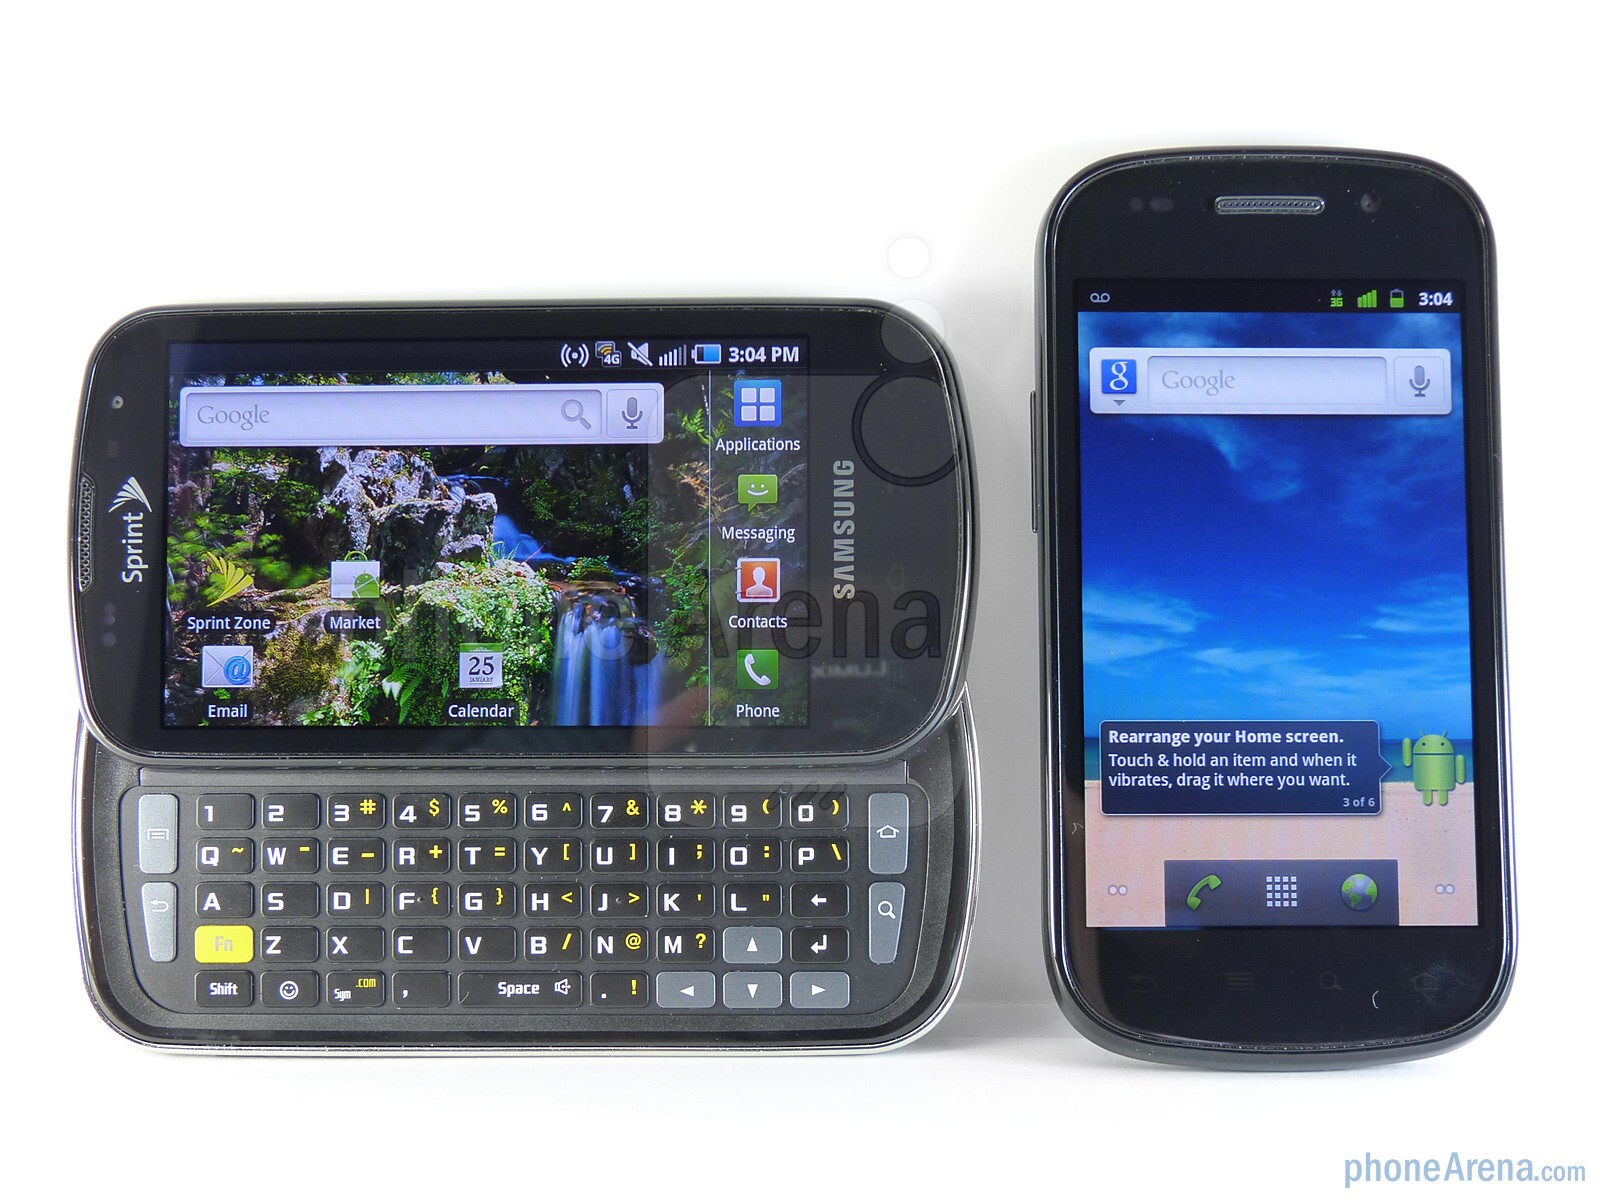 SAMSUNG EPIC 4G DRIVER FOR MAC